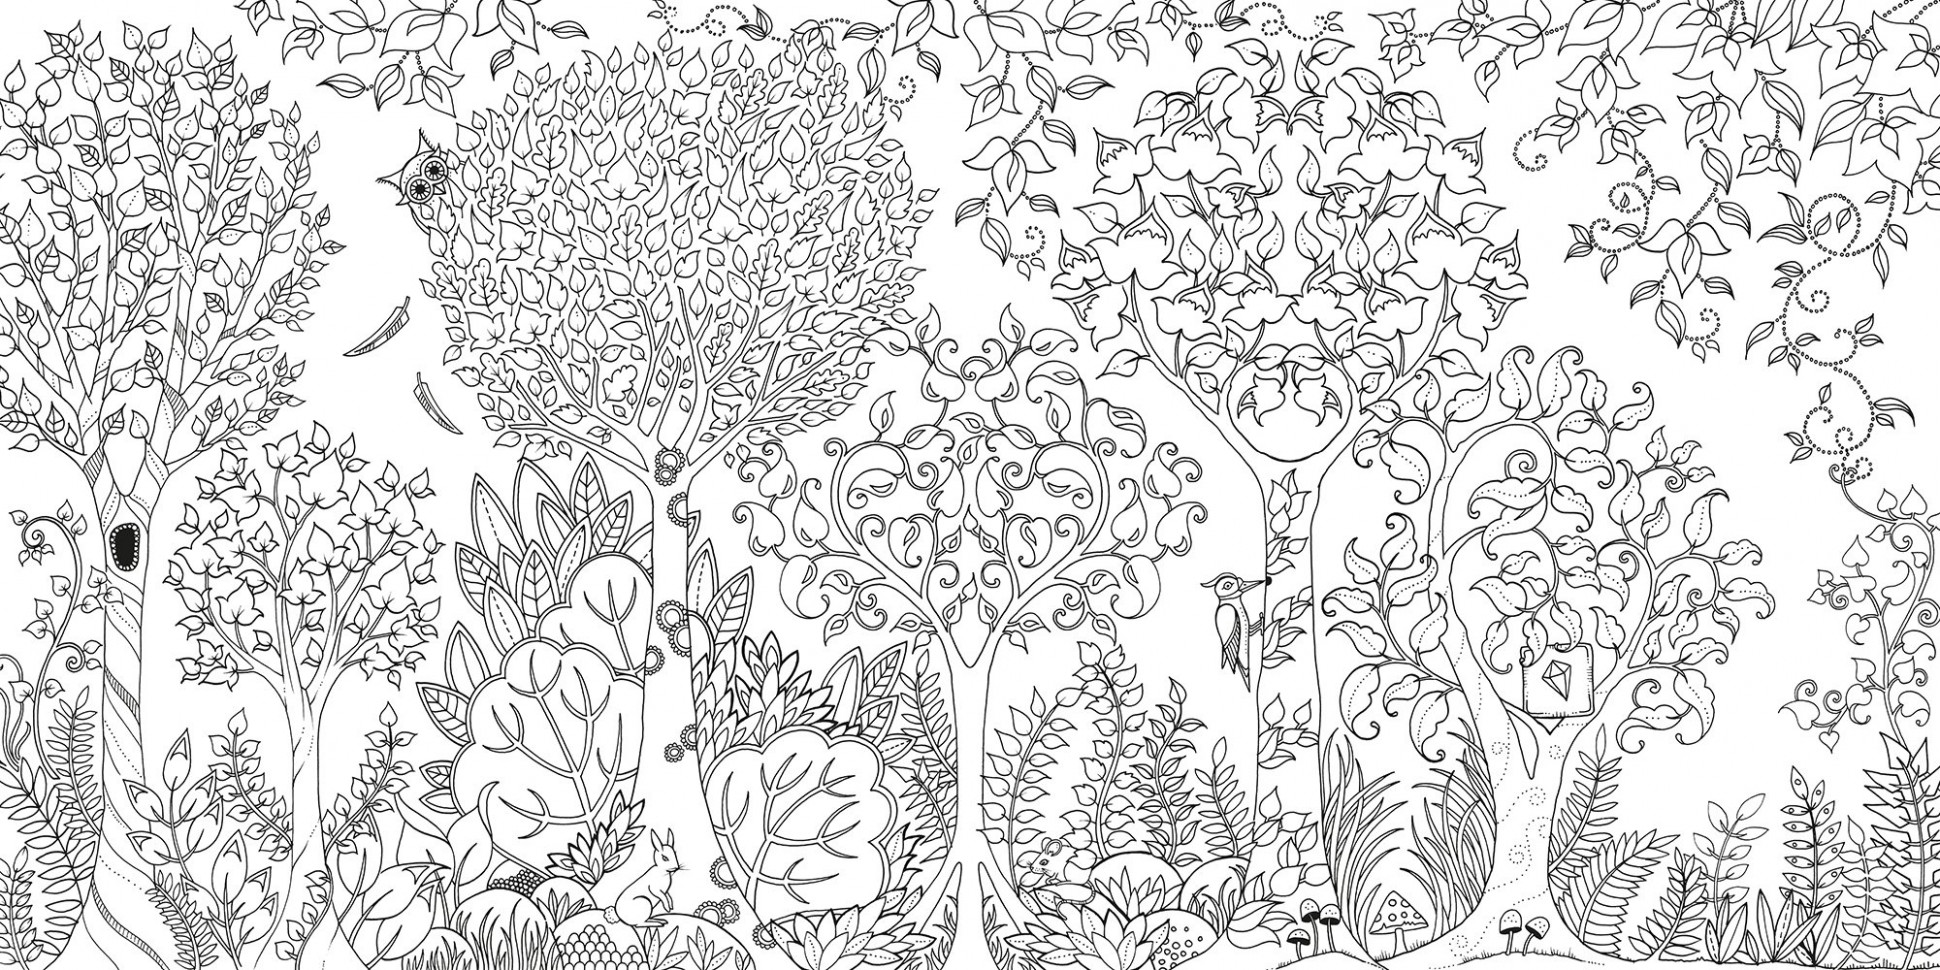 Enchanted Forest Colouring Book | Finlee